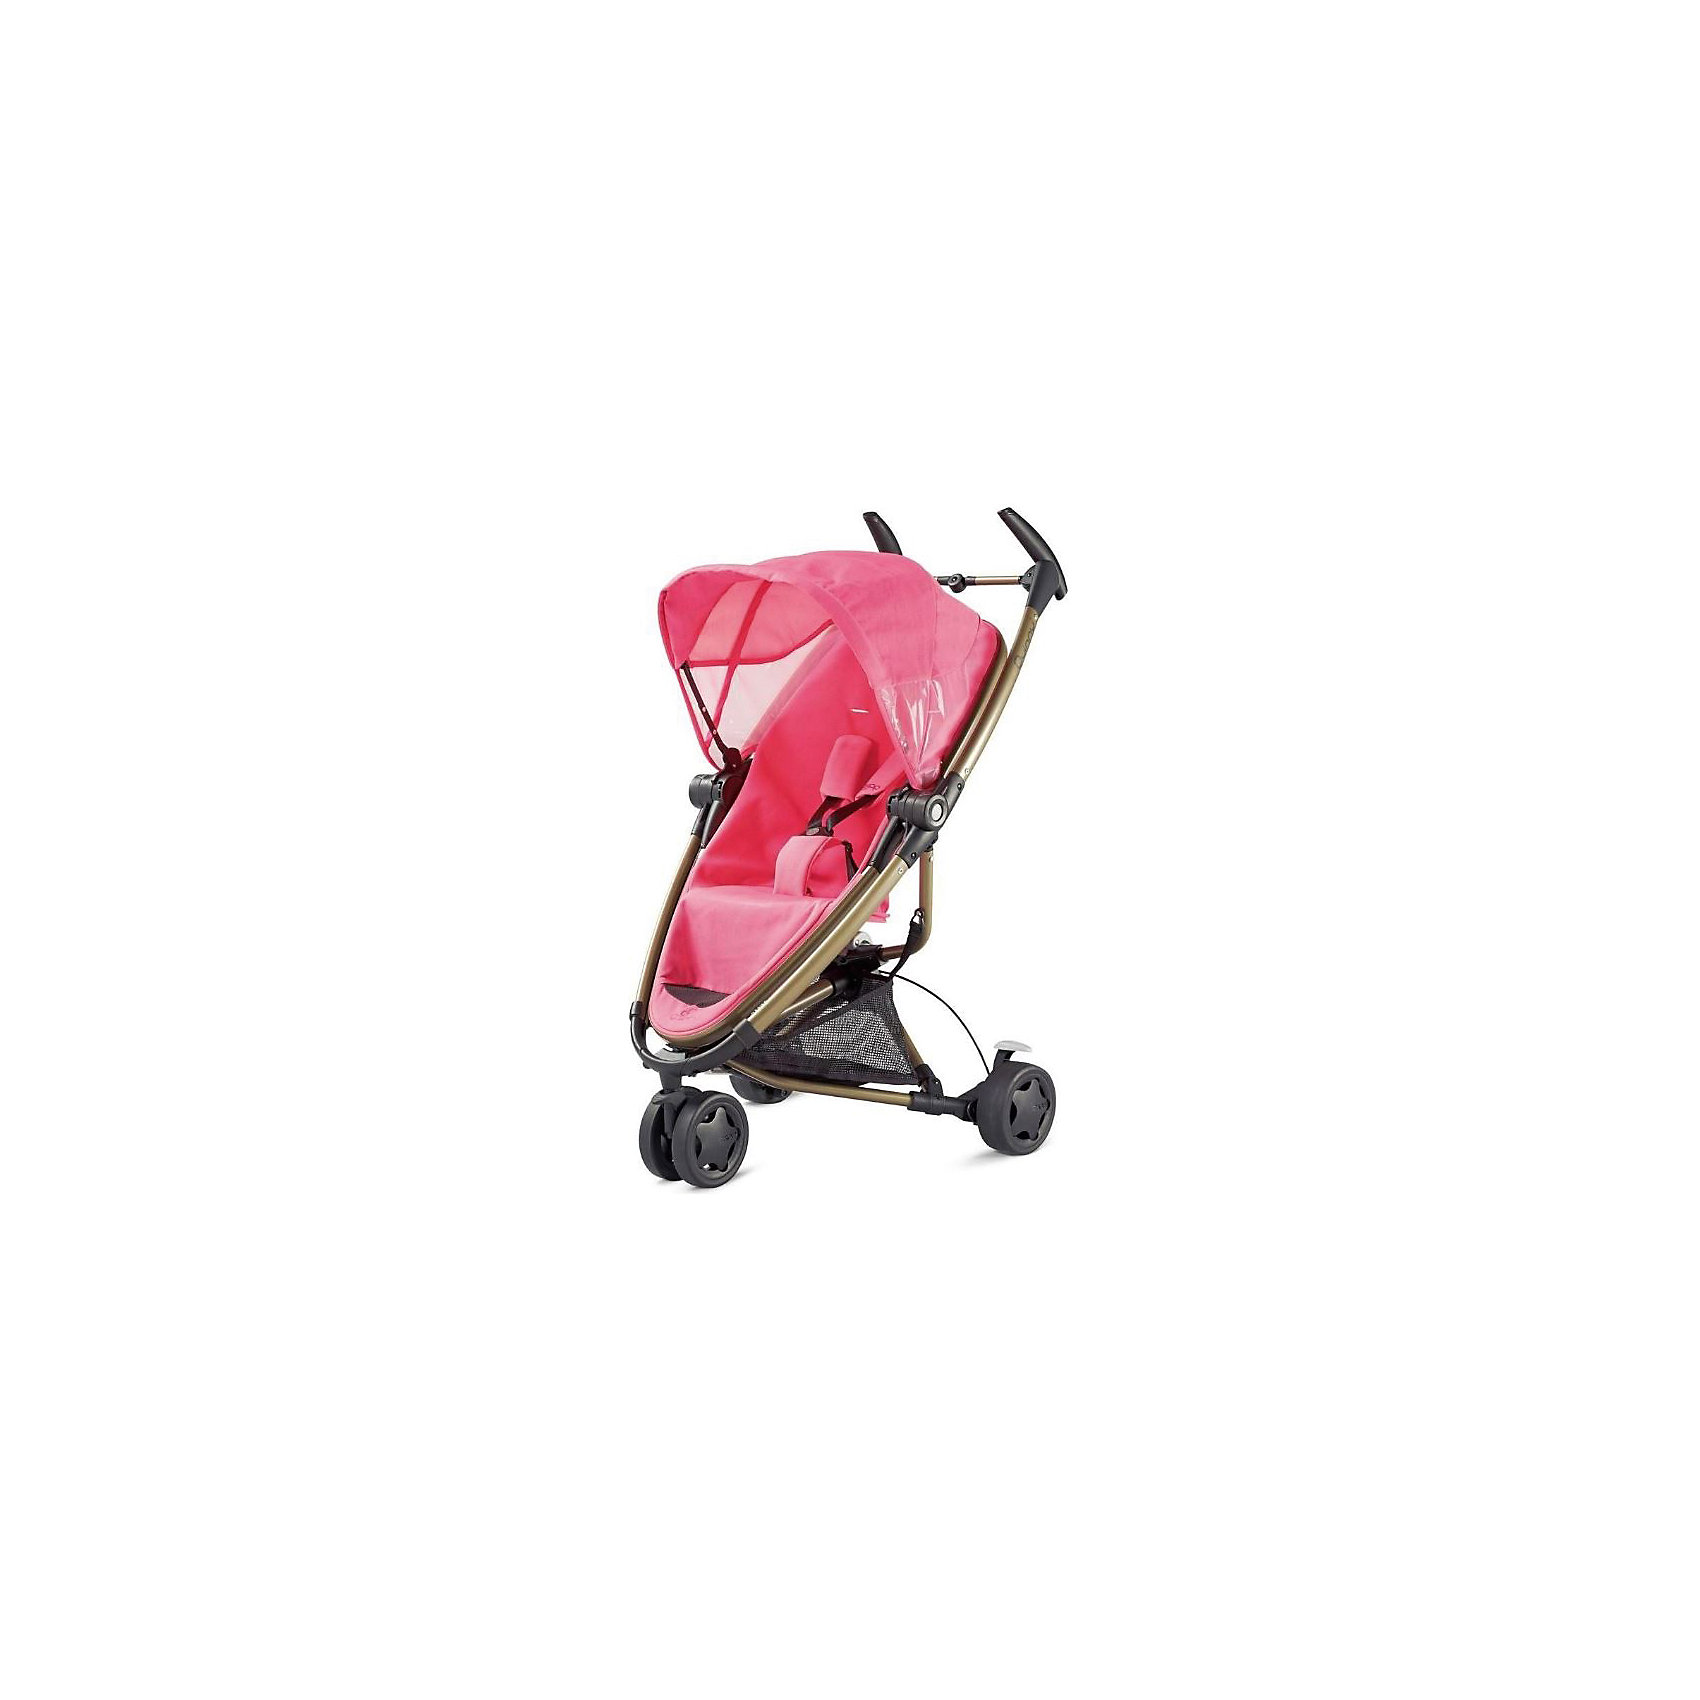 Quinny Коляска-трость Zapp Xtra, Quinny, pink precious quinny buzz xtra 2 in 1 baby stroller high landscape folding three wheeled shock absorber baby stroller bidirectional push carts